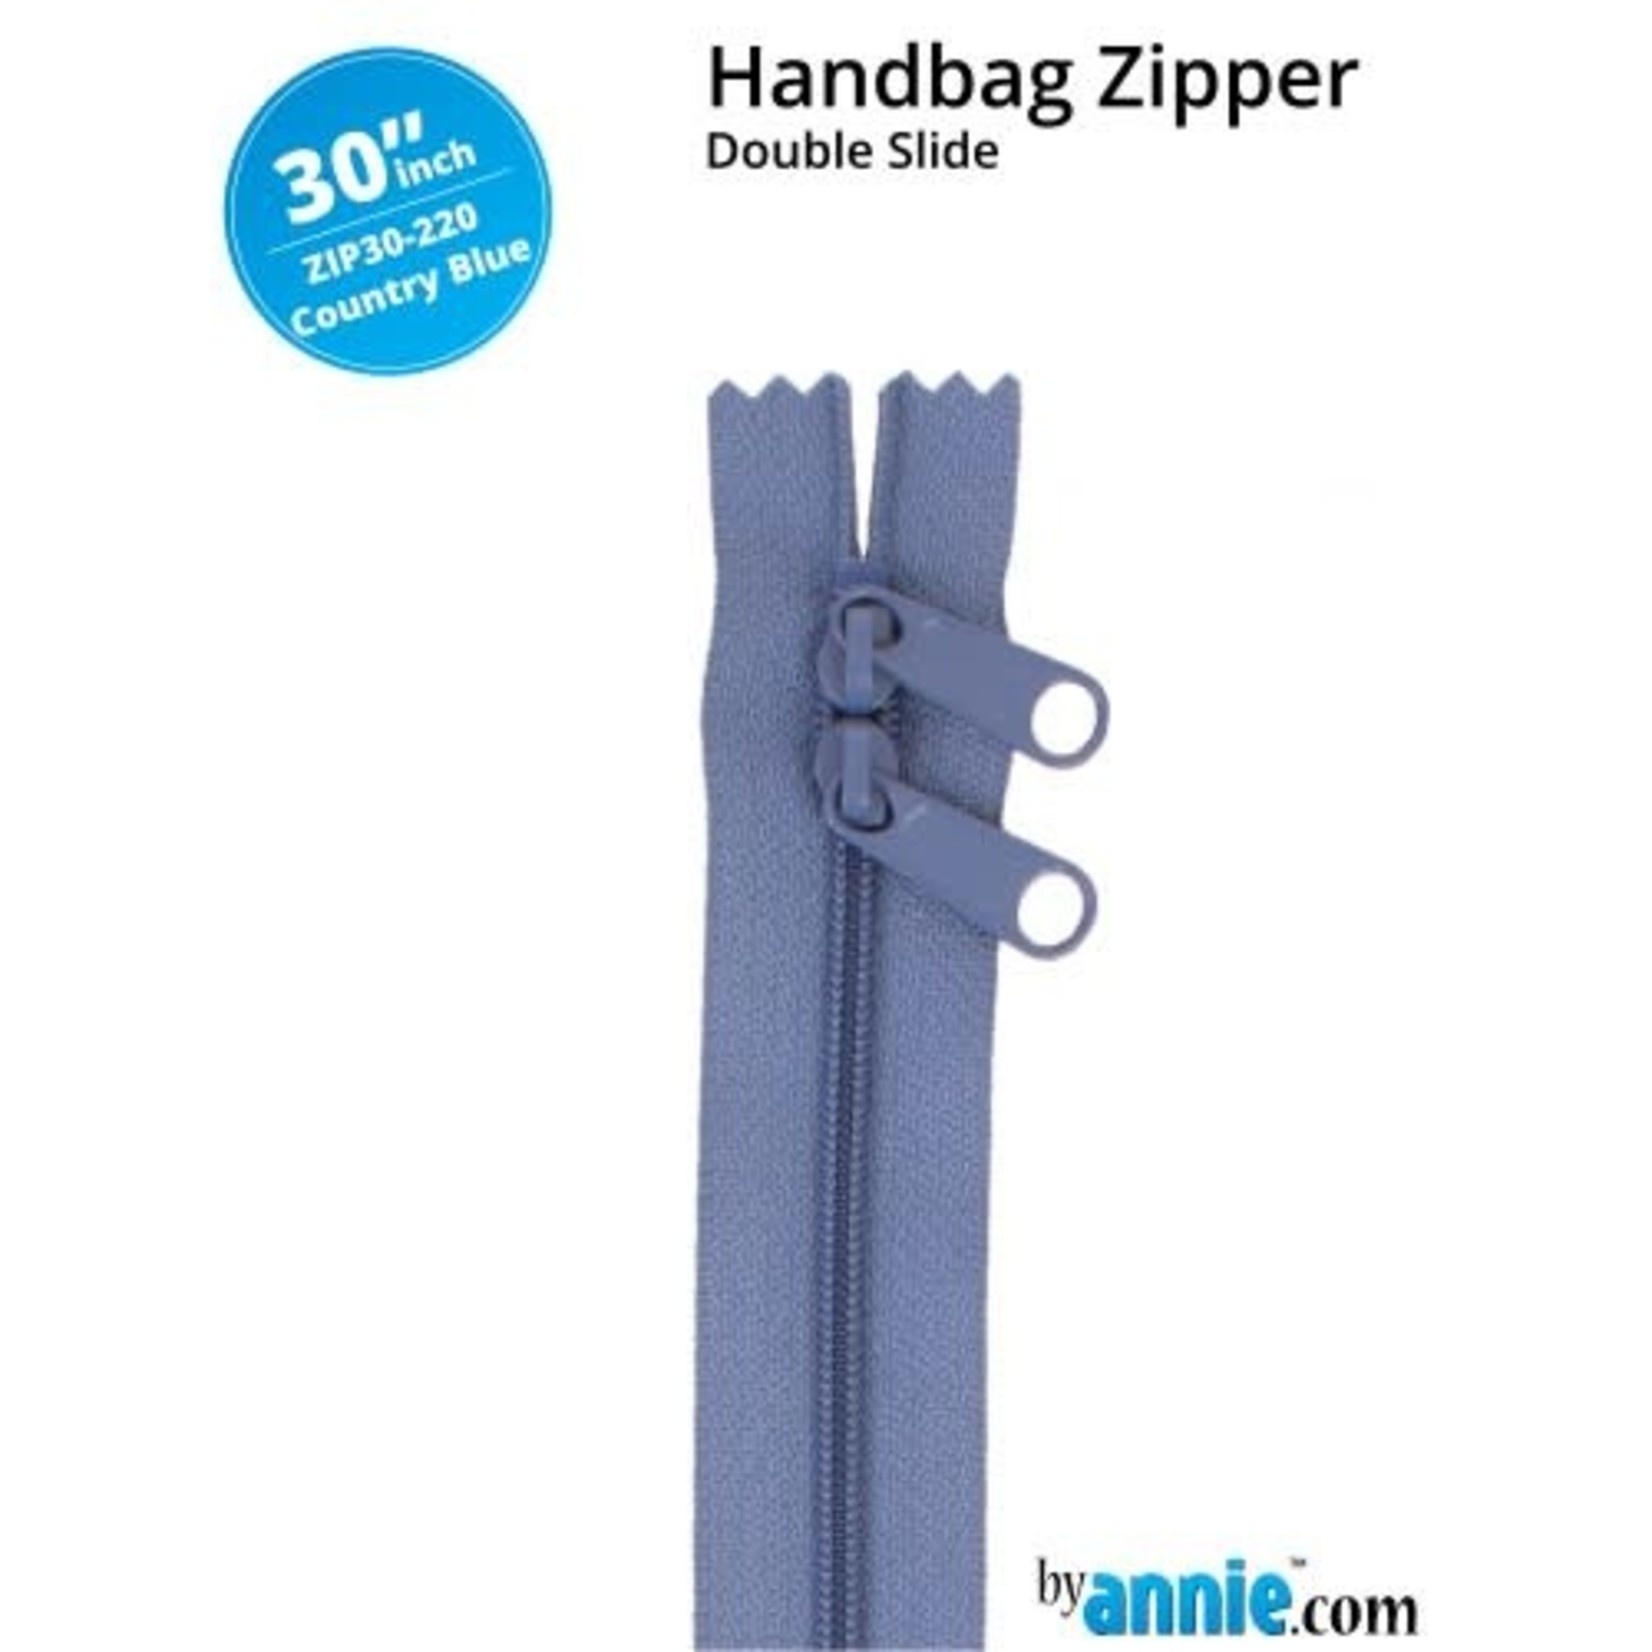 "BY ANNIE Double Slide Handbag Zipper 30"" Blue/Purple"